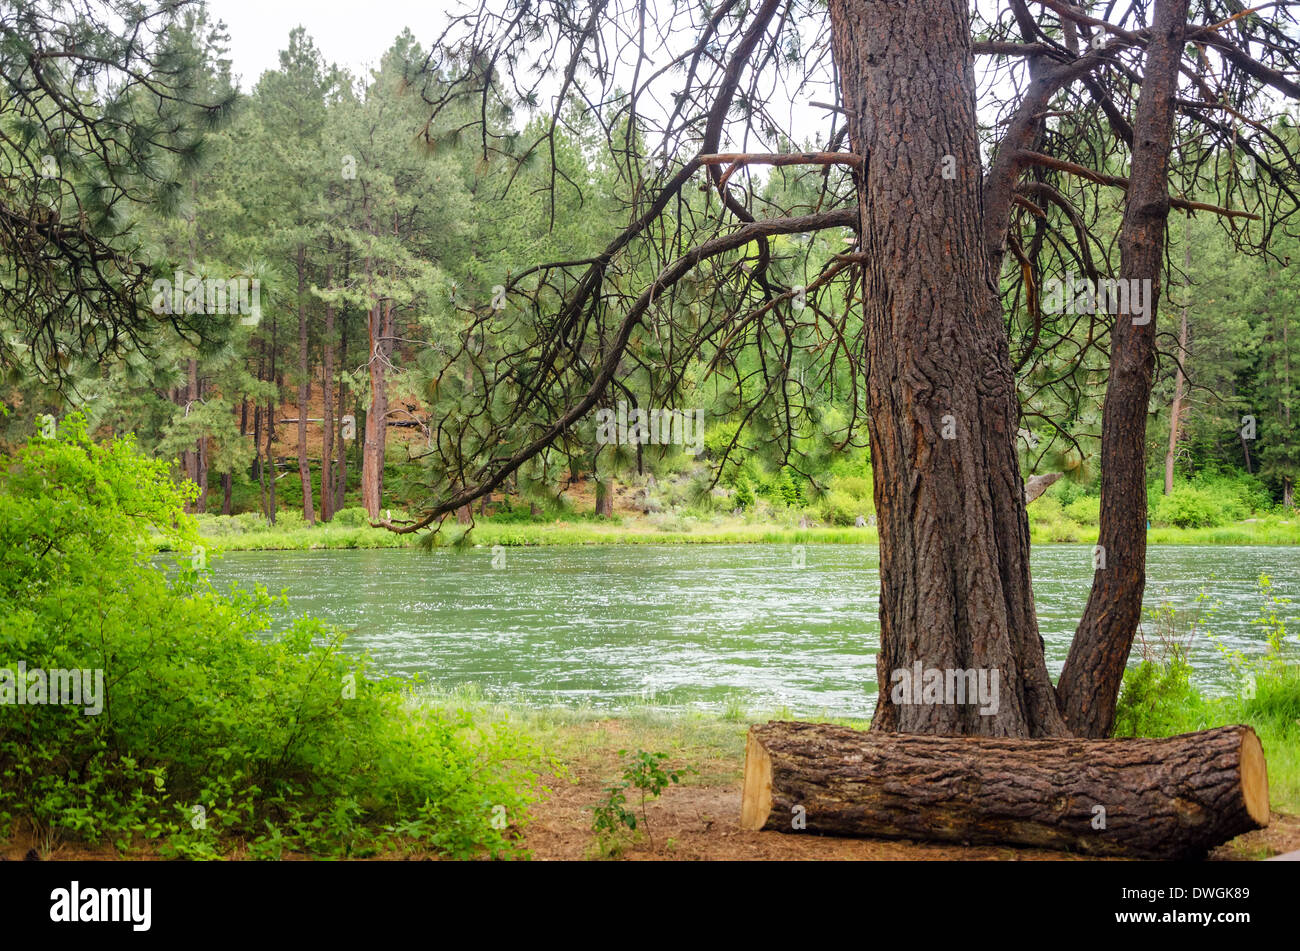 View of the Deschutes River in Central Oregon framed by a large pine tree - Stock Image